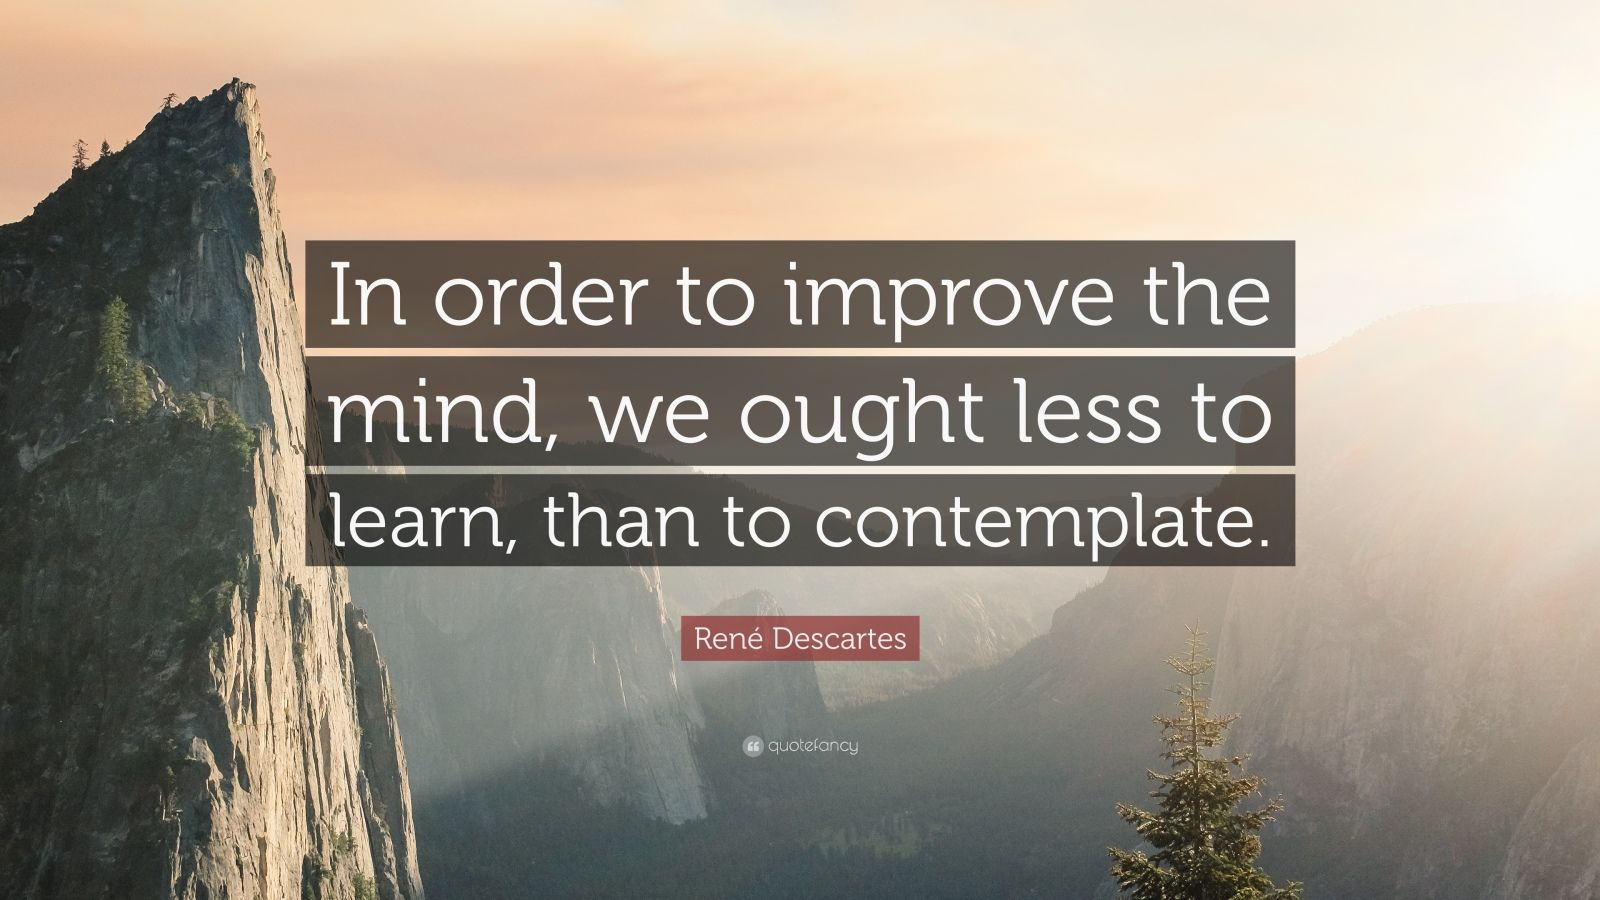 """René Descartes Quote: """"In order to improve the mind, we ought less to learn, than to contemplate."""""""